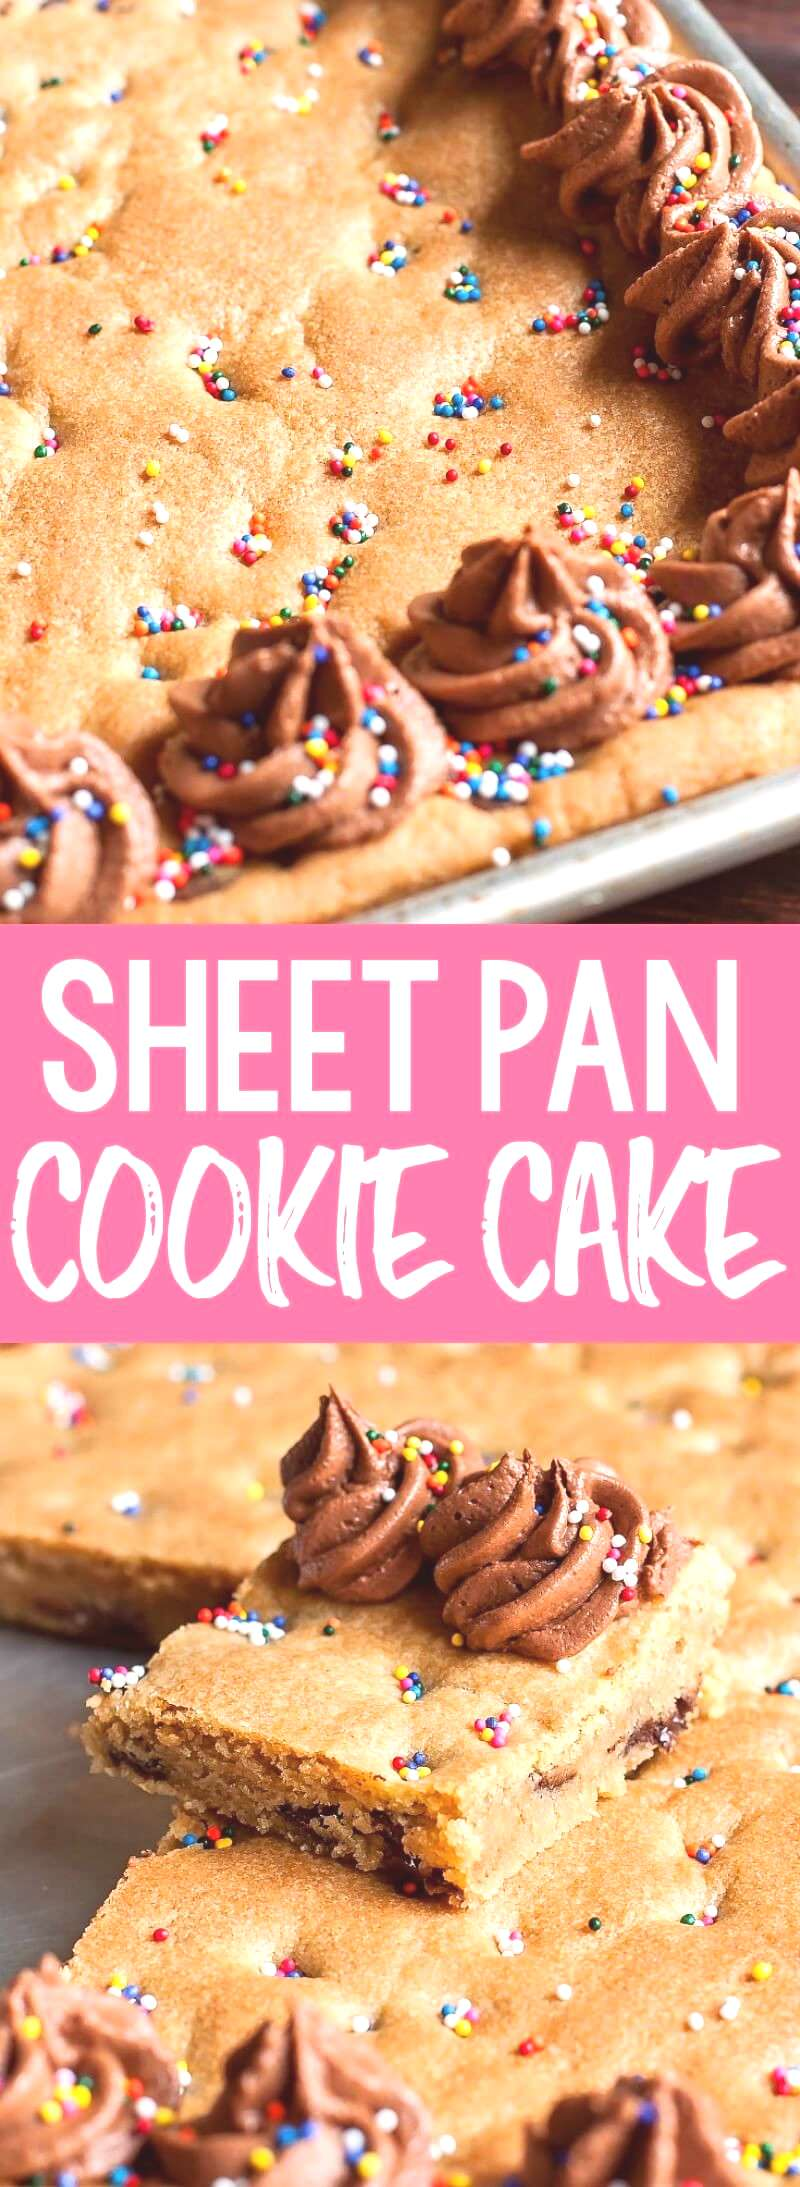 This Sheet Pan Cookie Cake Recipe is ready to party! A Classic chocolate chip cookie cake is a tota